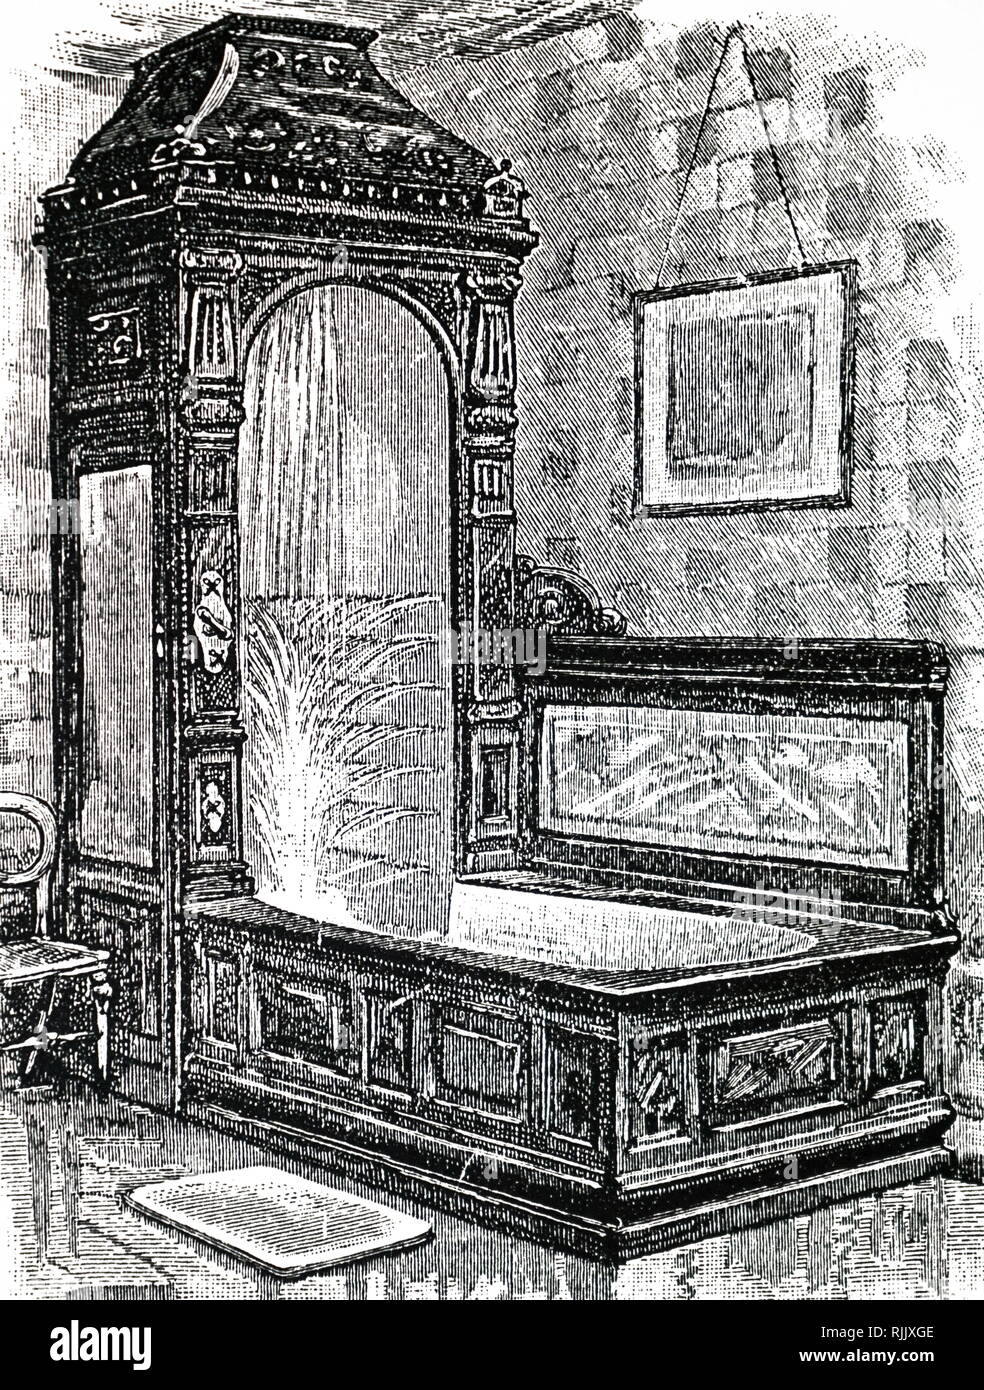 An engraving depicting a bedroom washbasin and ewer. The bath was fitted with a shower and spray apparatus. 'Fittings of this elaborate kind are luxuries confined to large establishments'. Dated 19th century - Stock Image